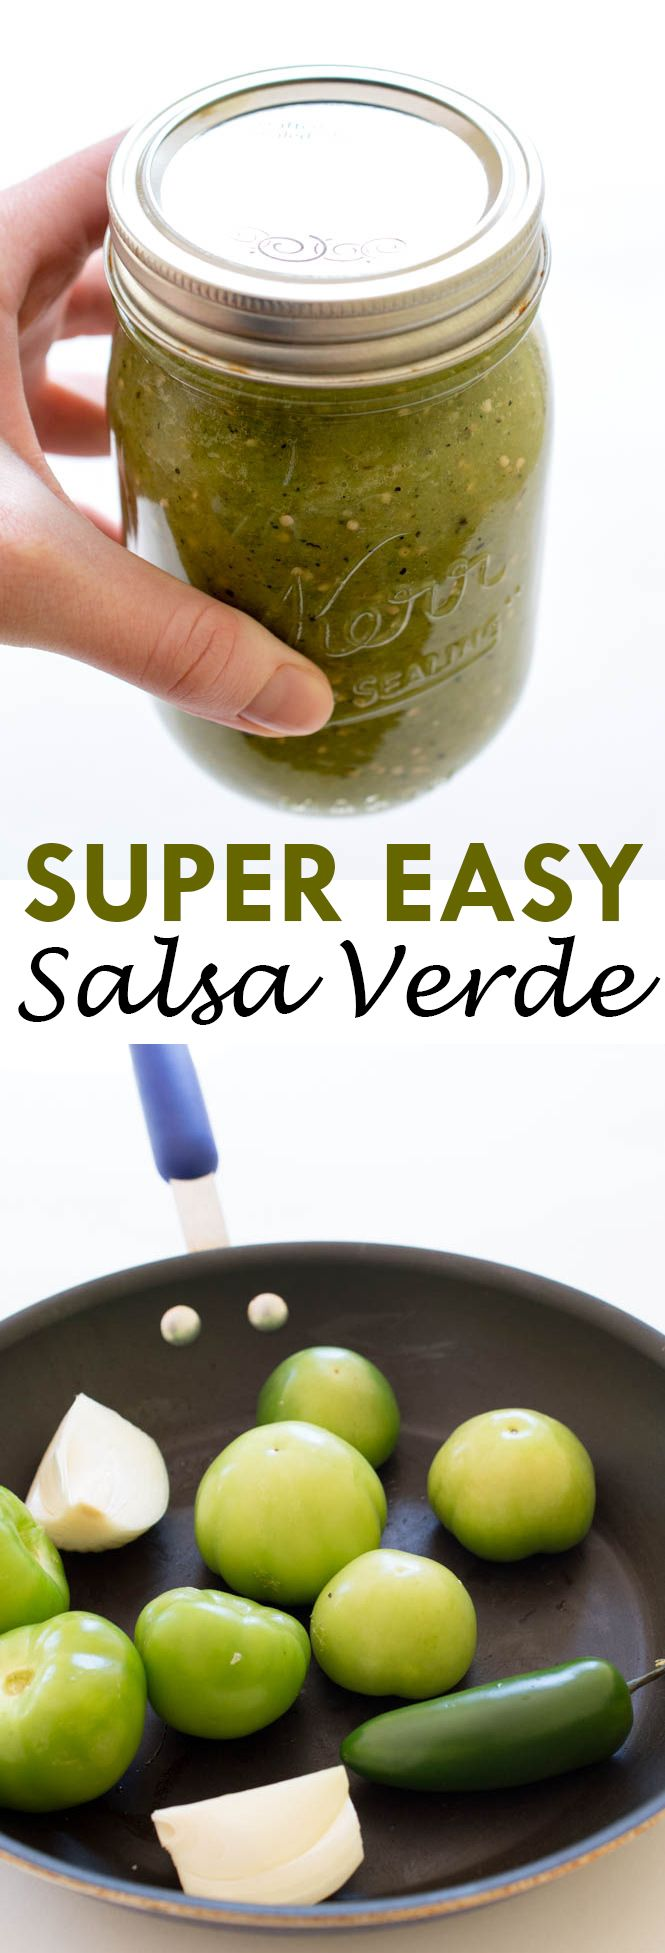 Super Easy Salsa Verde